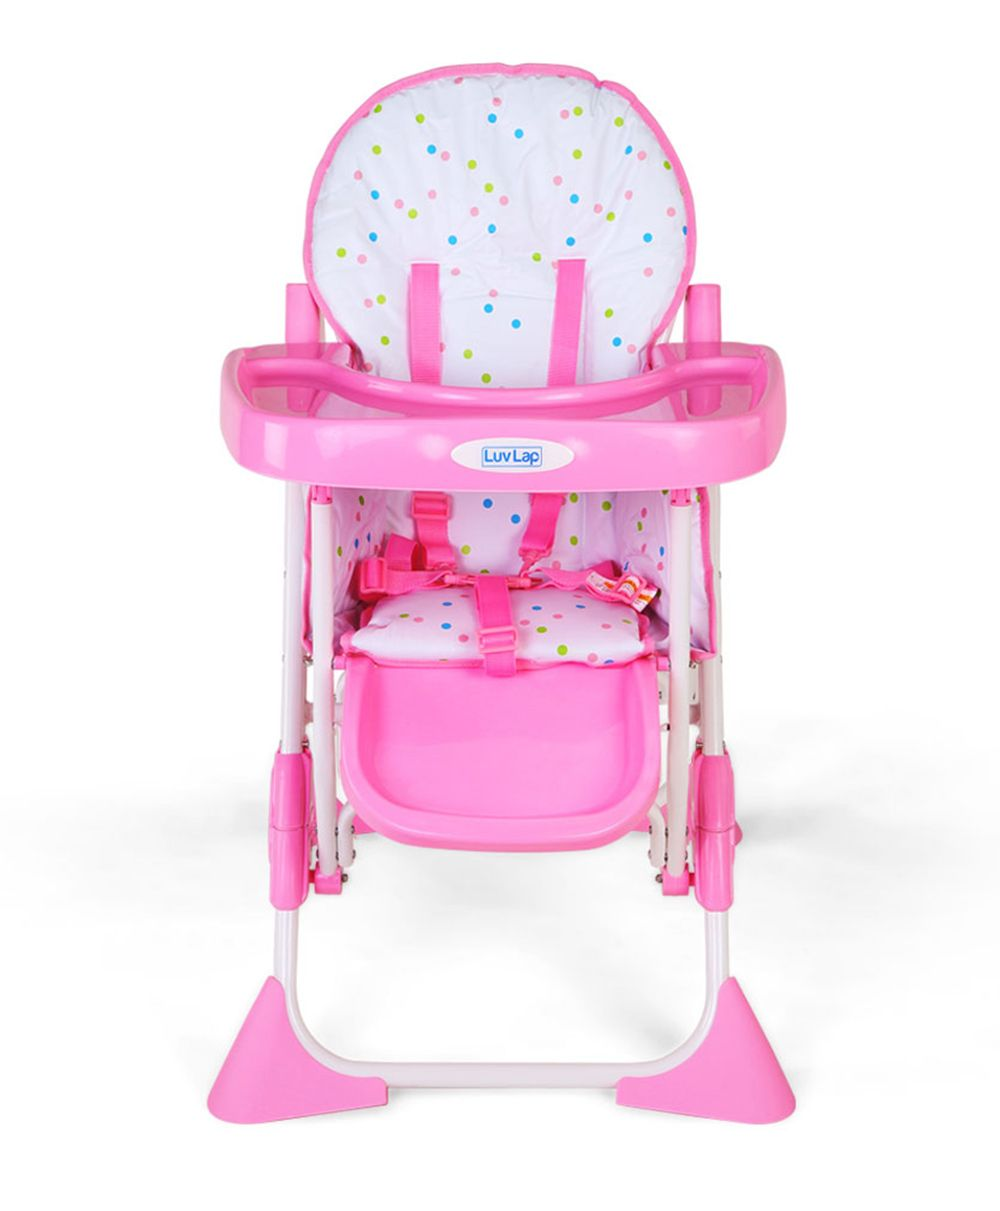 Luv Lap Baby Comfy High Chair (Pink)